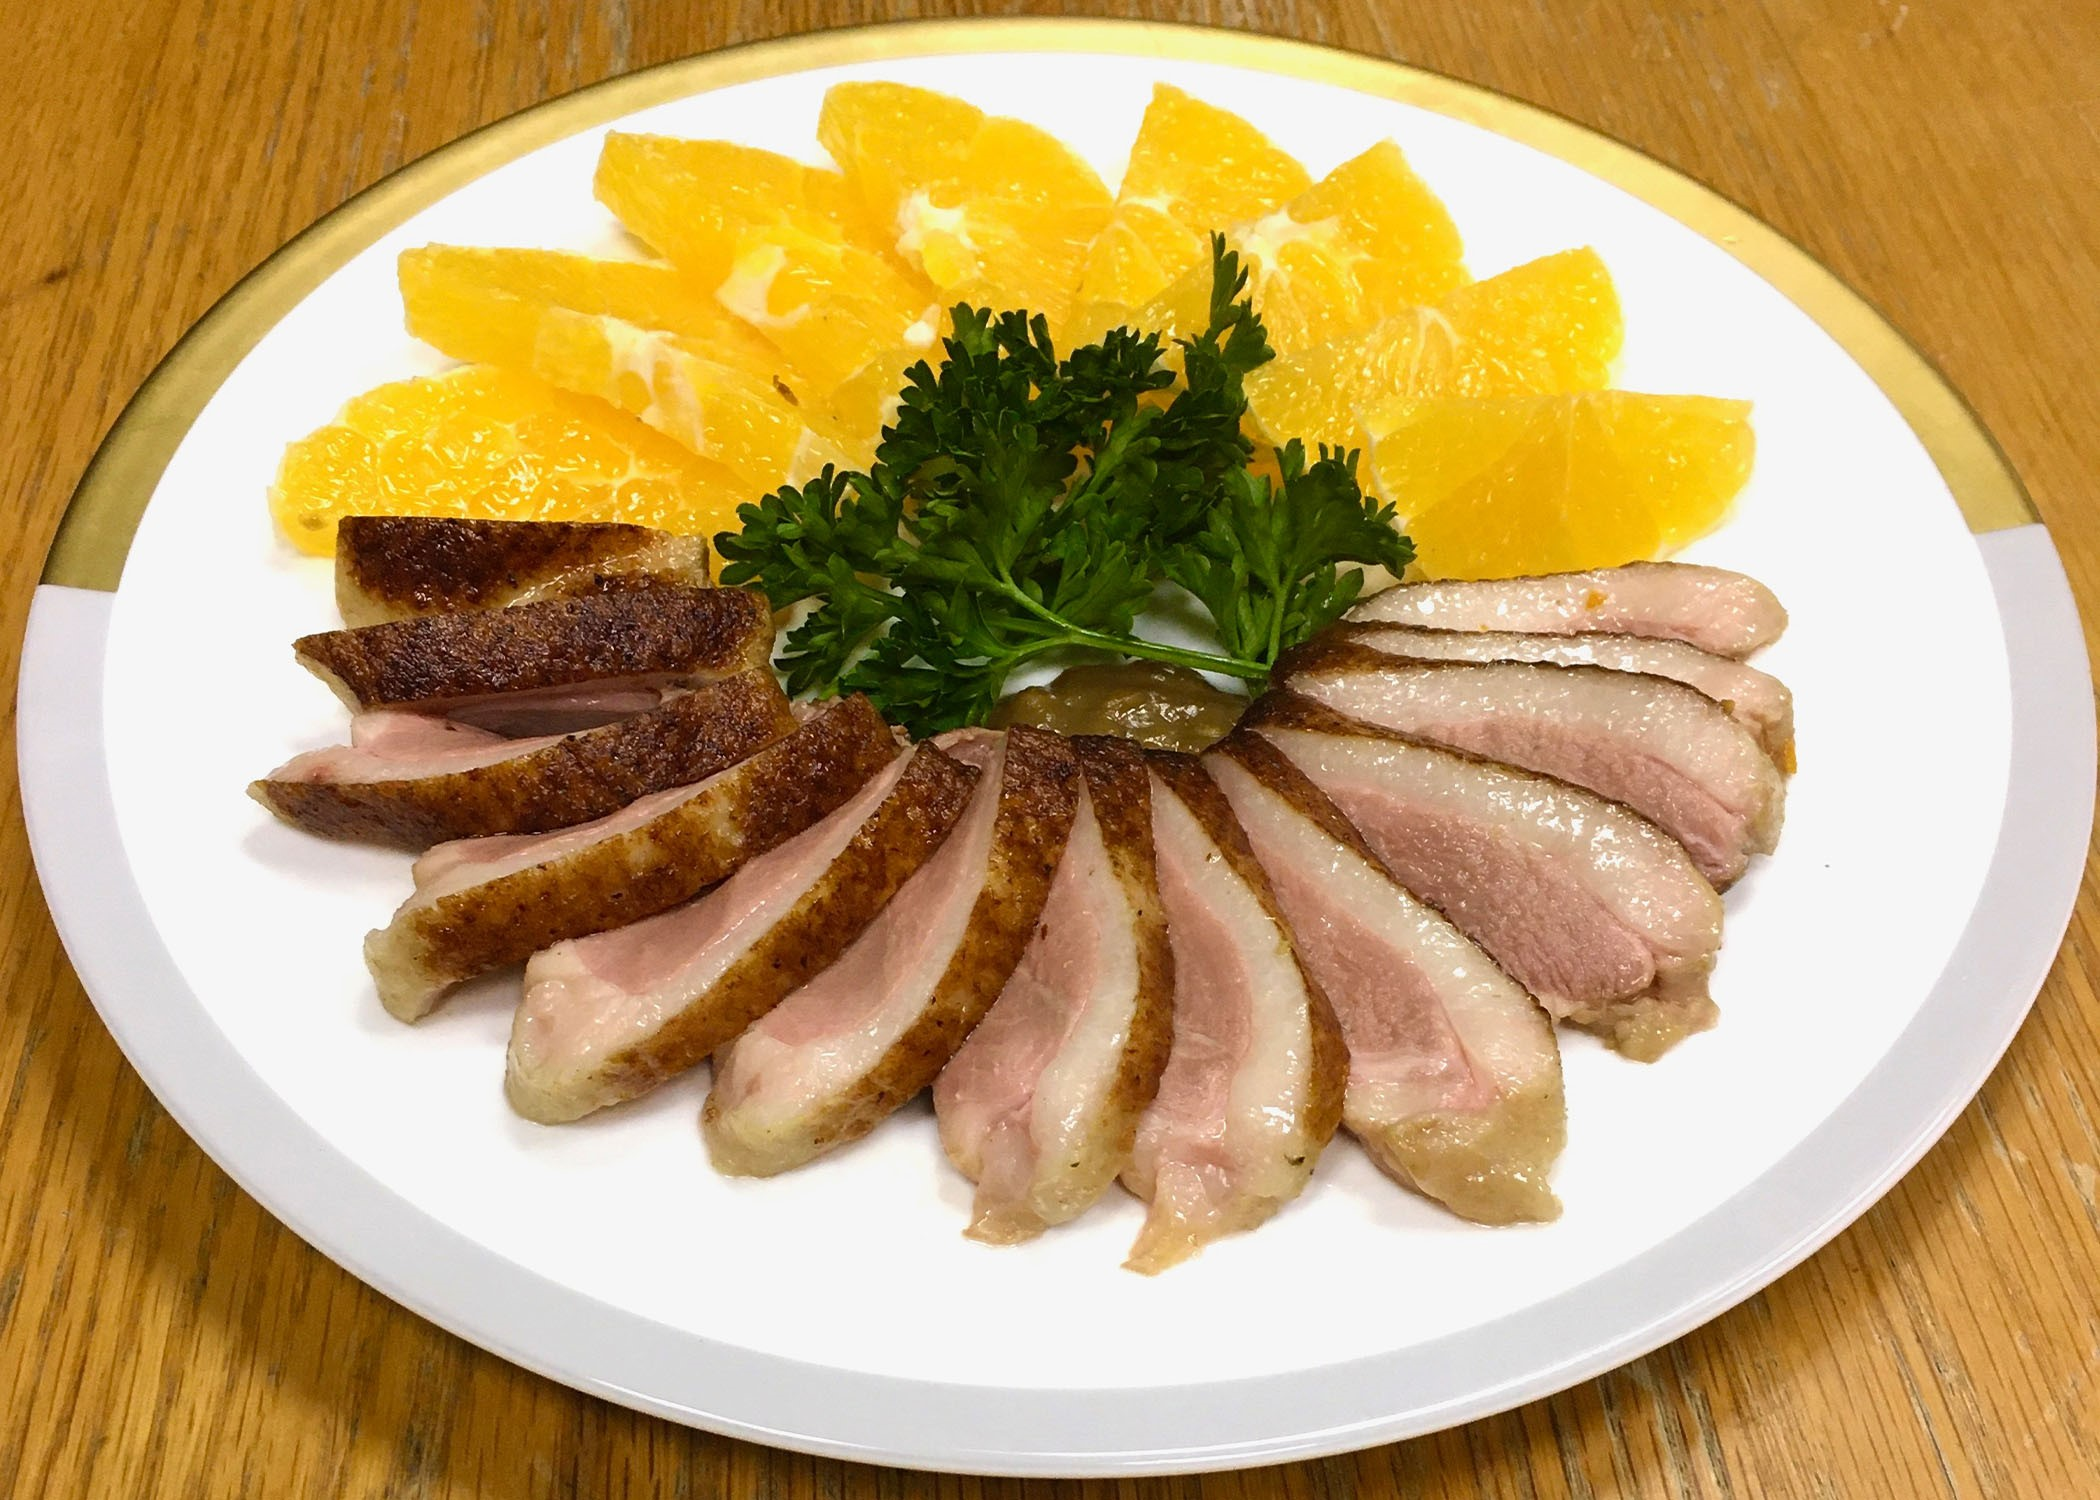 a plate with duck slices and oranges and some sort of vegetable garnish in the middle